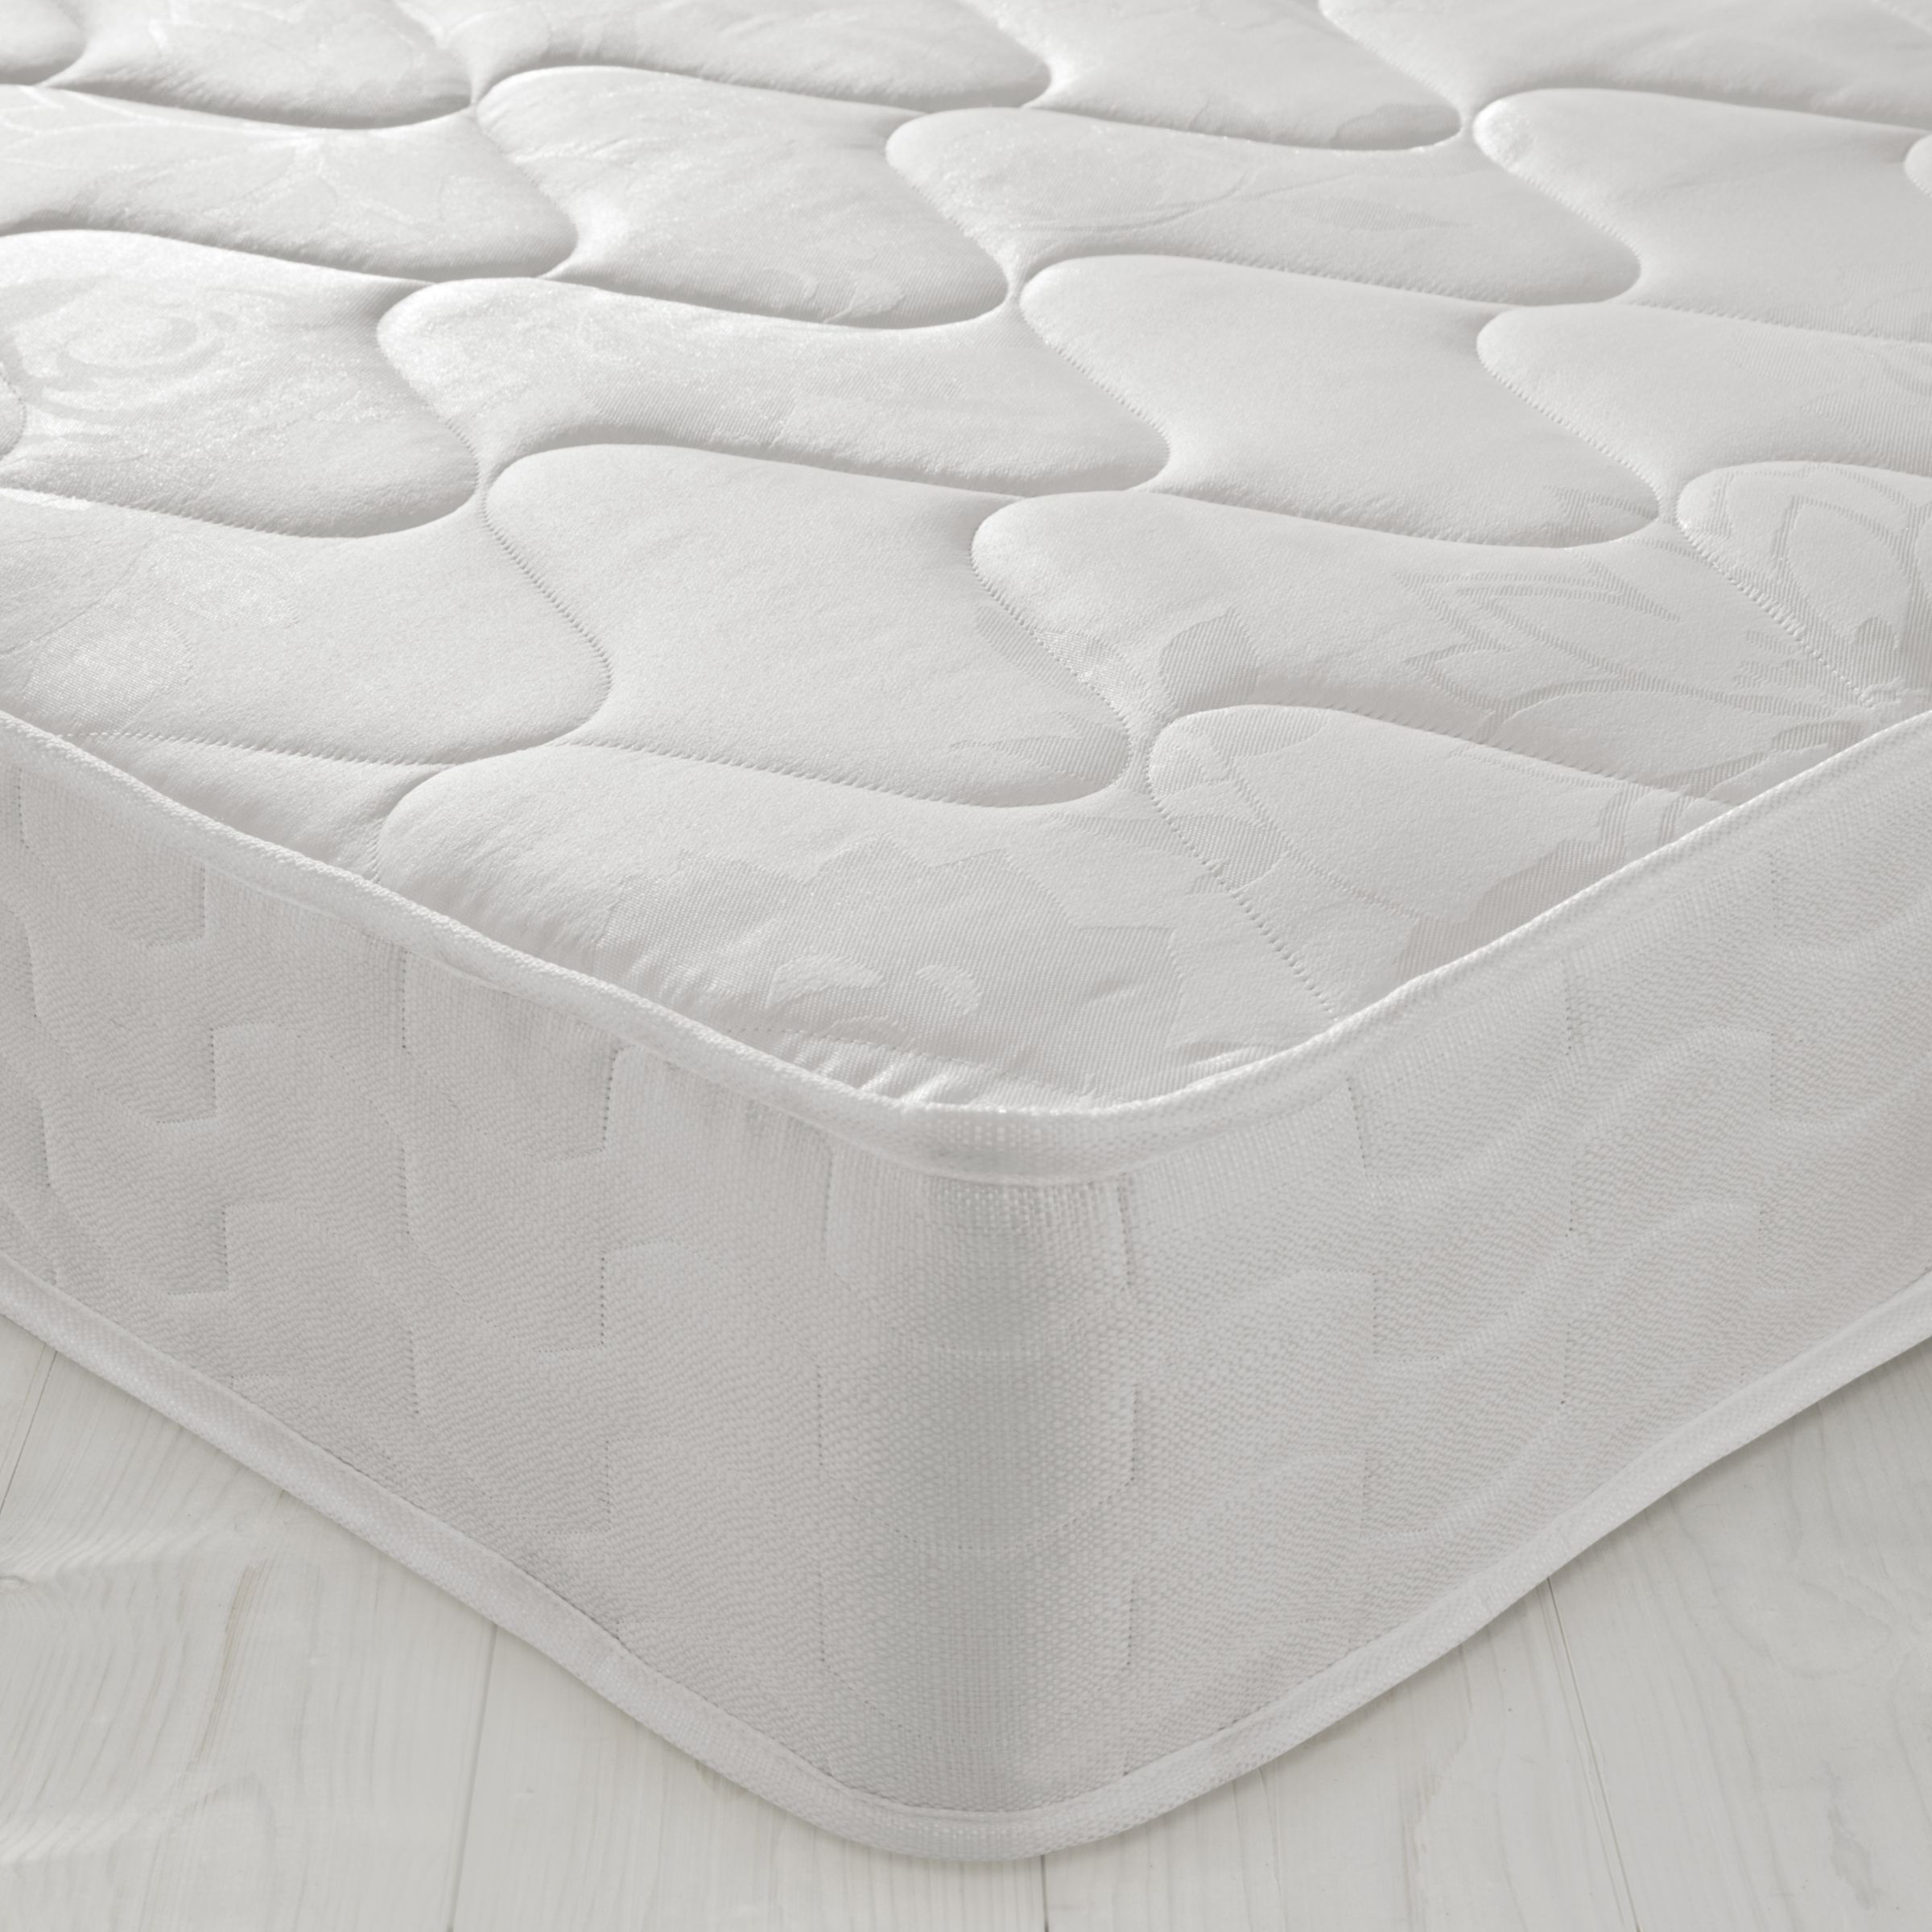 Silentnight Comfort Miracoil Mattress, Single